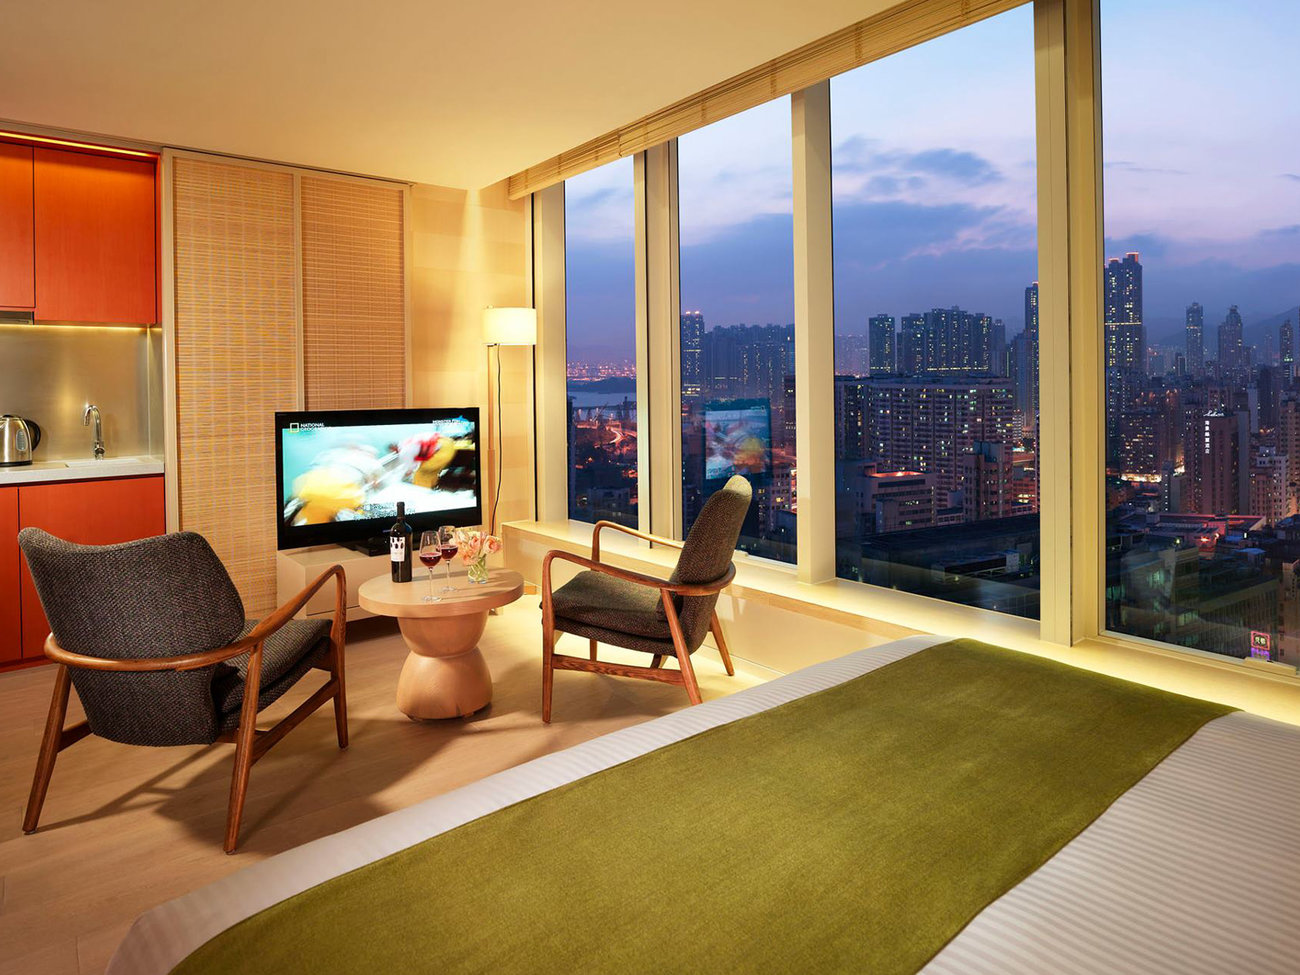 Madera Hotel in Hong Kong